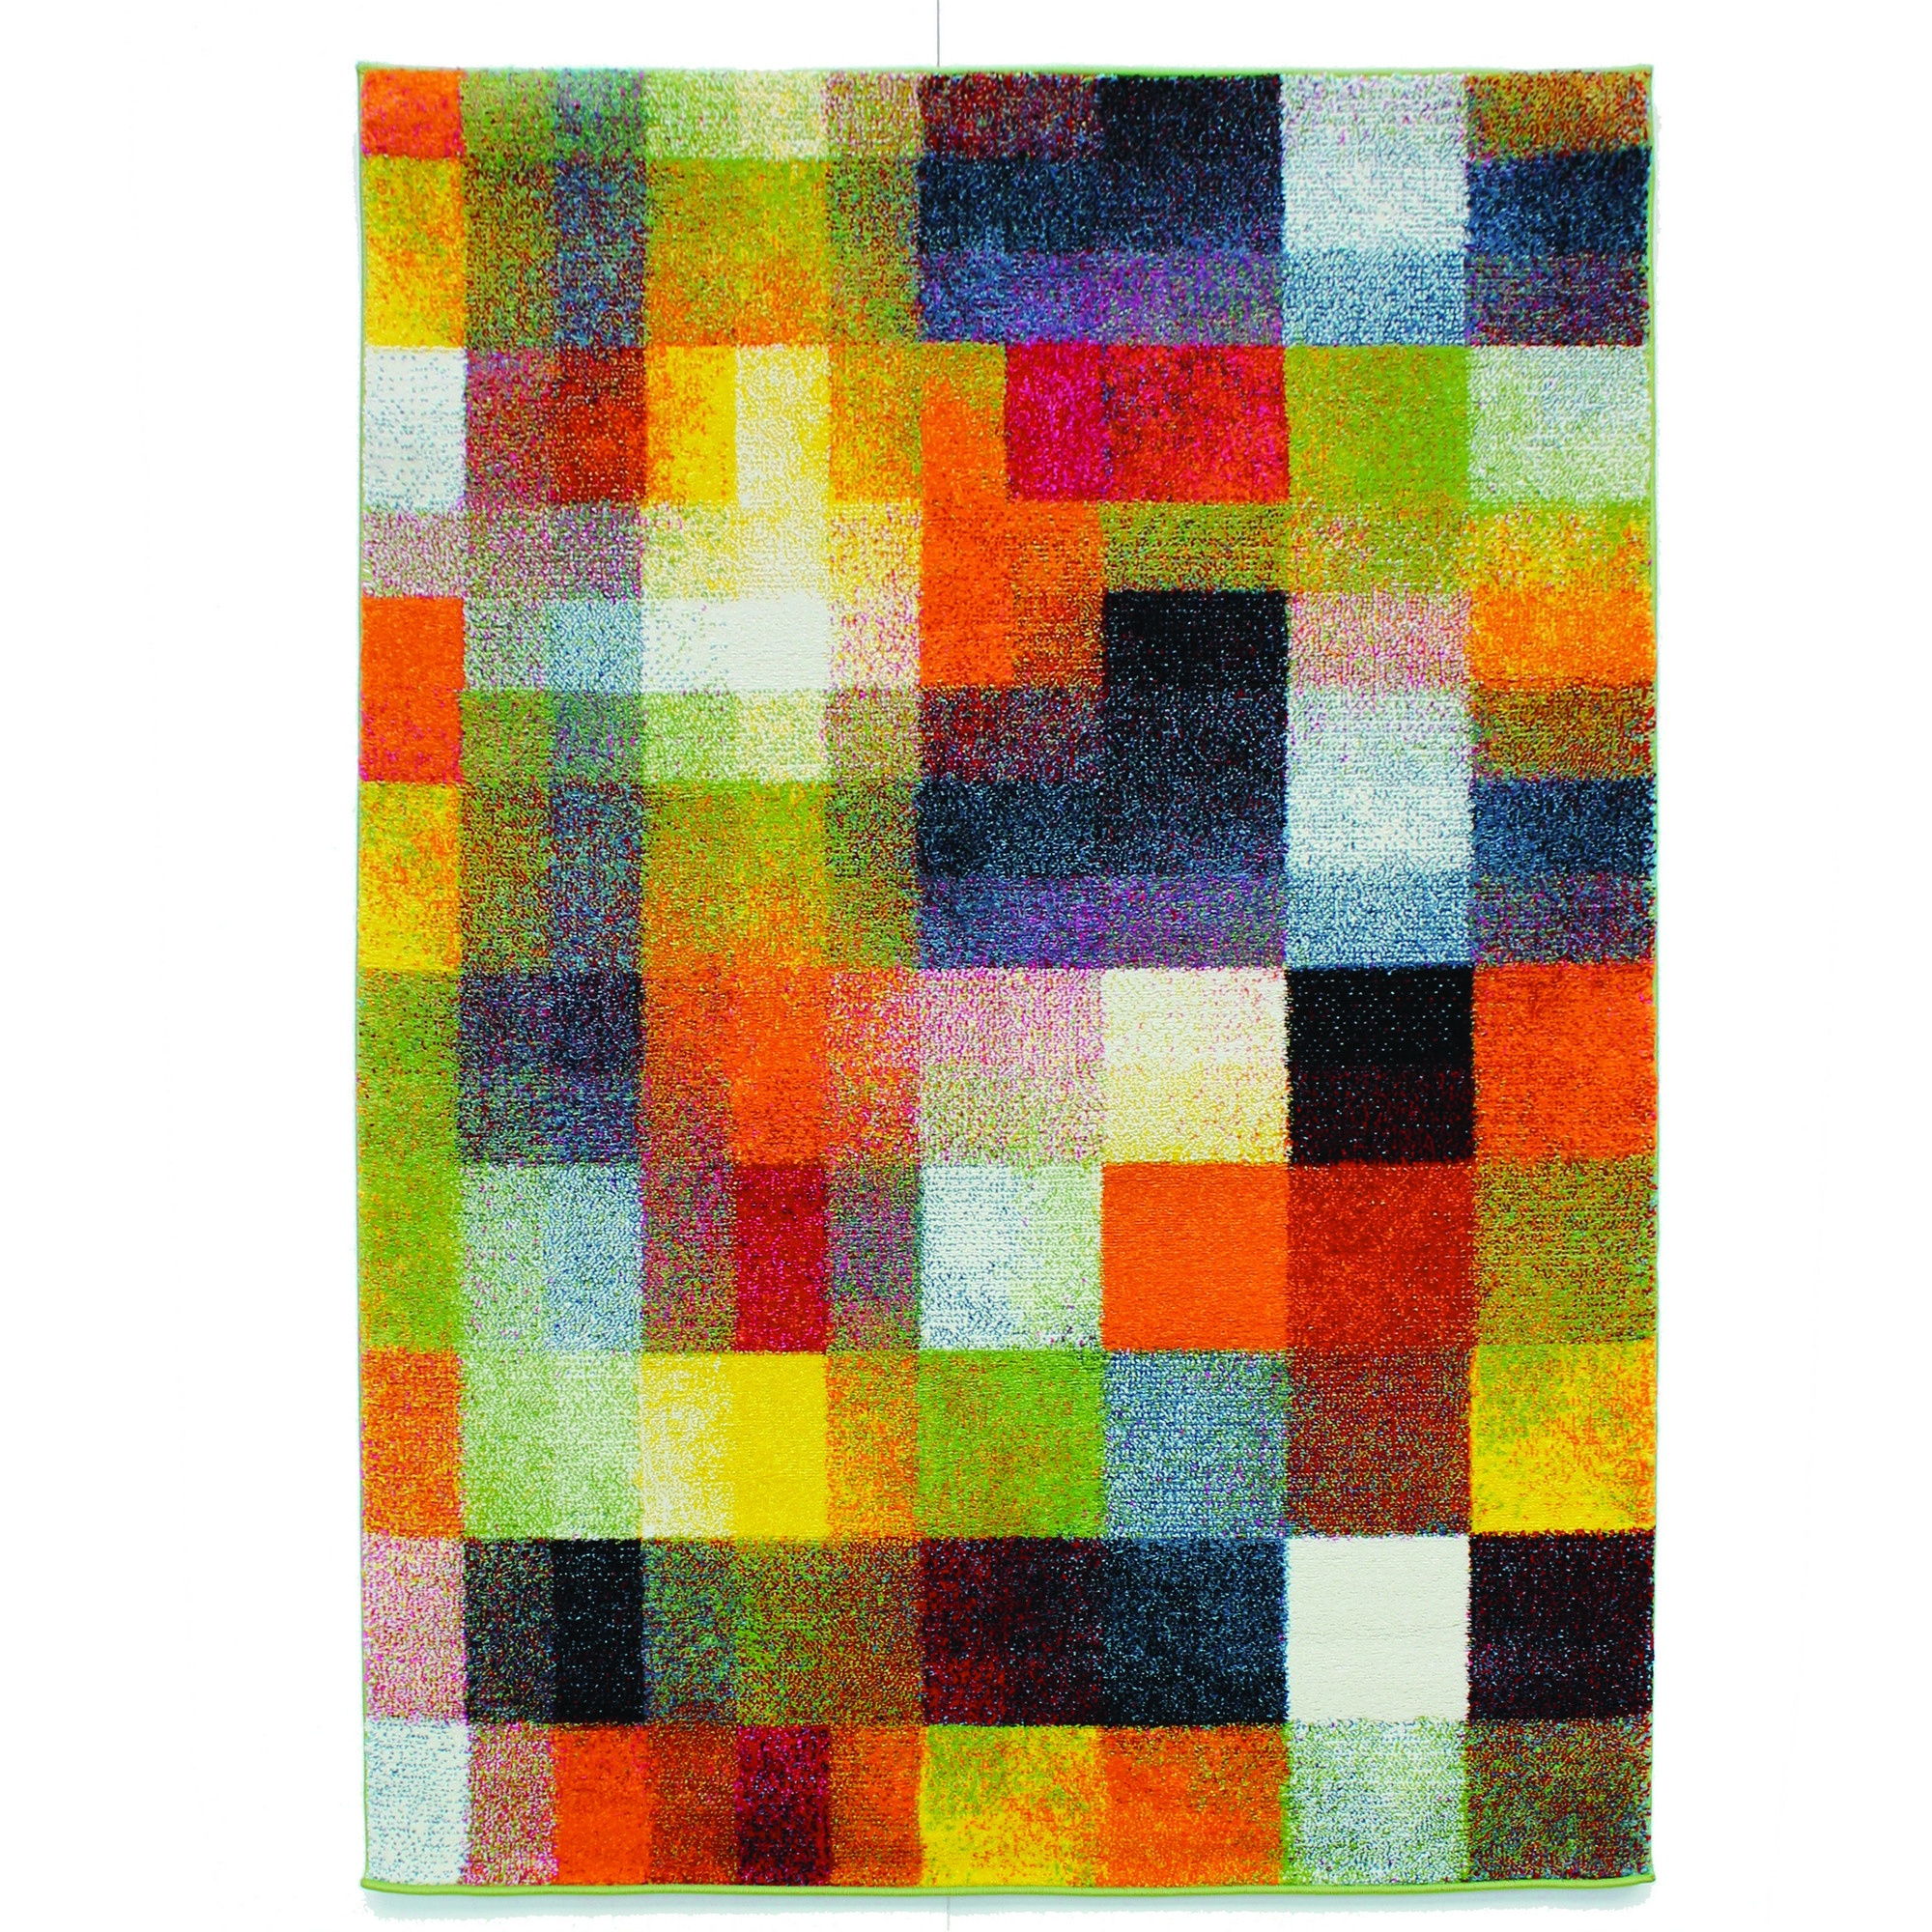 flair rugs impressionist teppich mit farb quadraten ebay. Black Bedroom Furniture Sets. Home Design Ideas